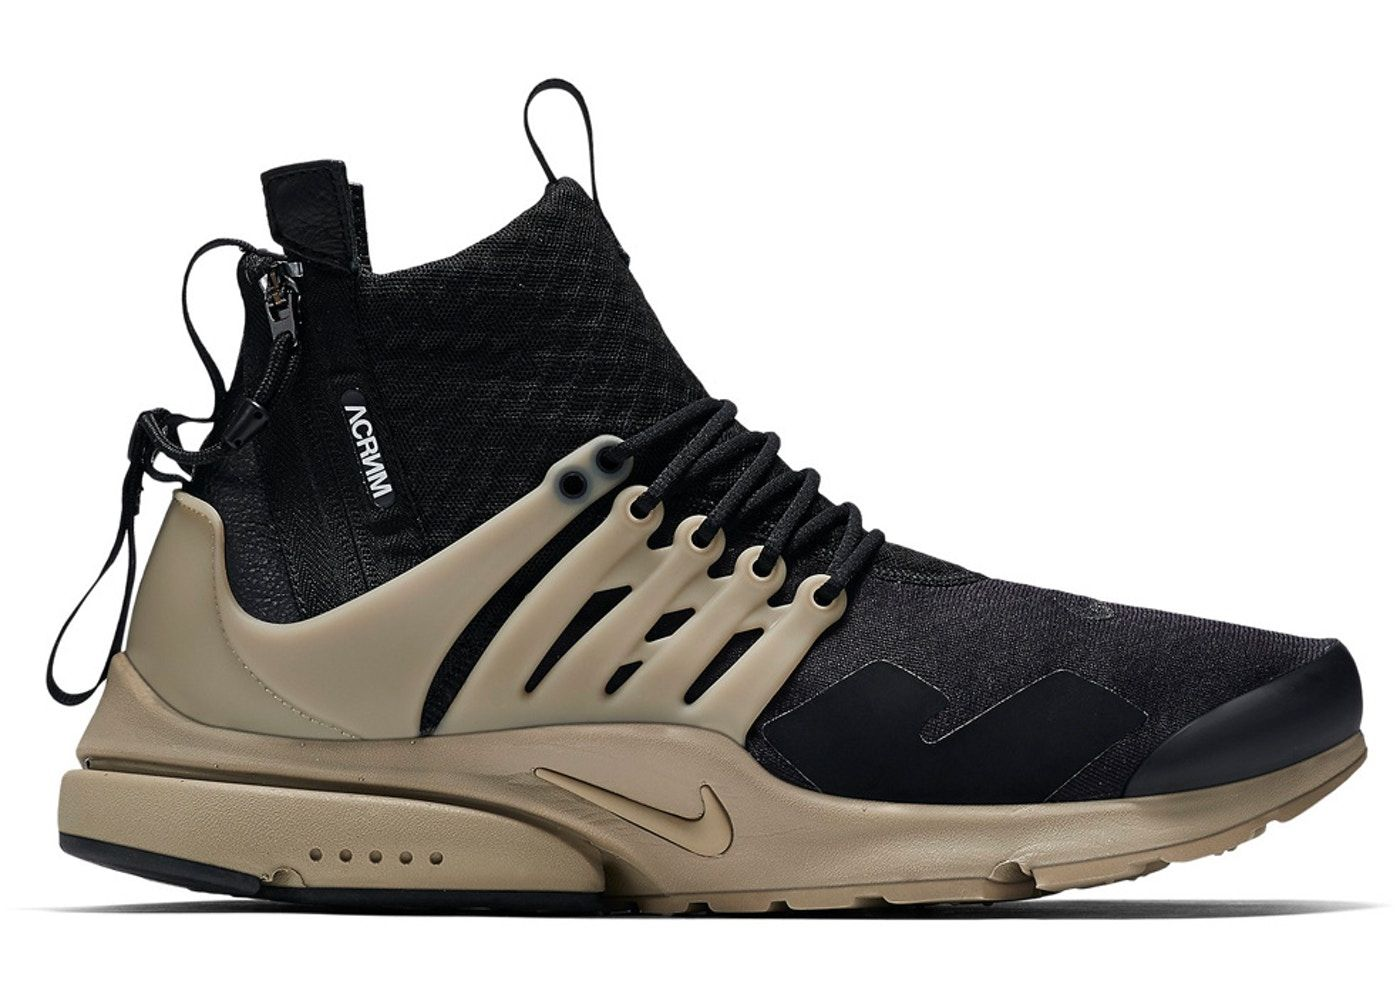 e6a042b959b5 Check out the Air Presto Acronym Bamboo available on StockX